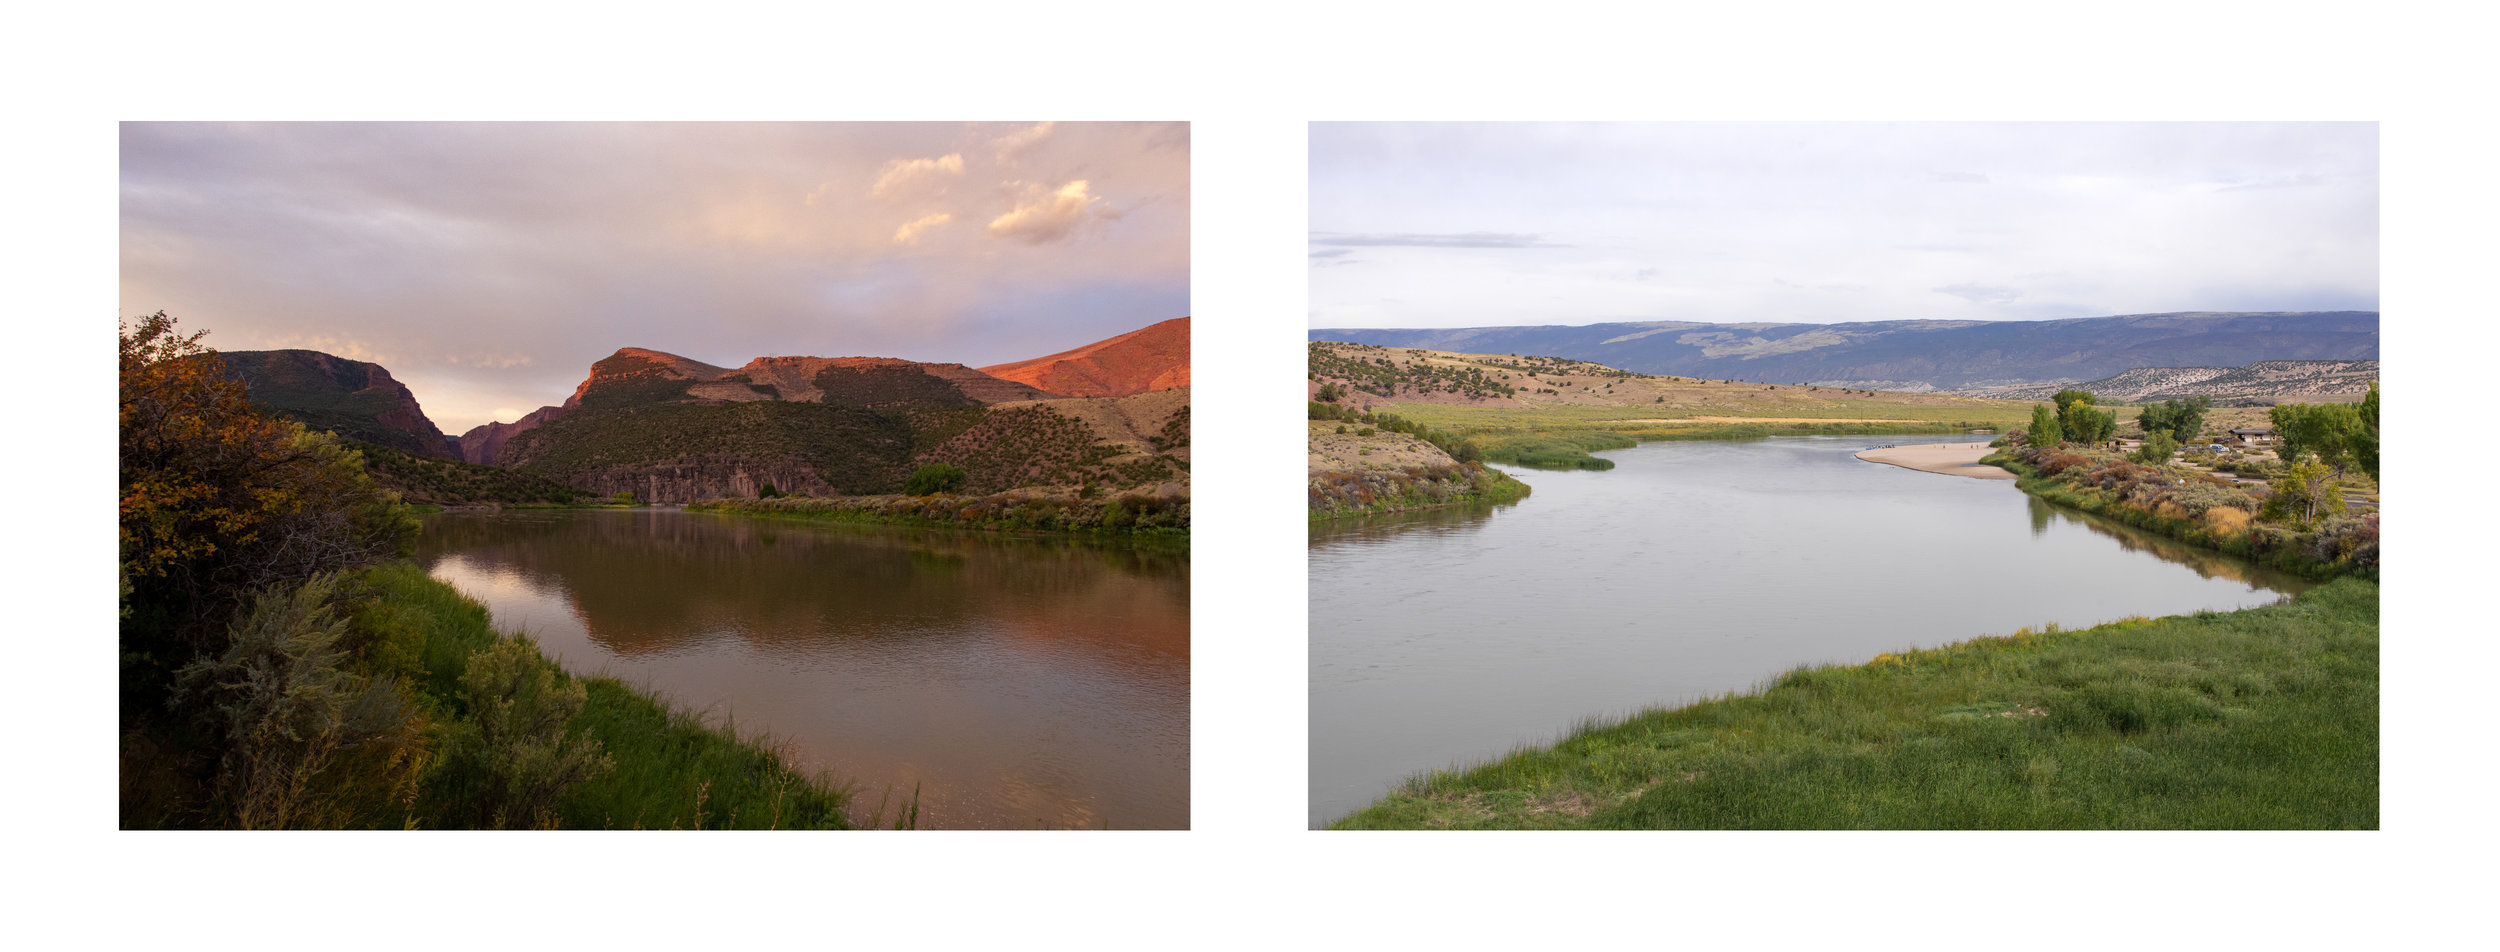 "Edie Winograde: Diptych from series Sight Seen; ""Gates of Lodore, dawn"" and ""Green River, raft"""